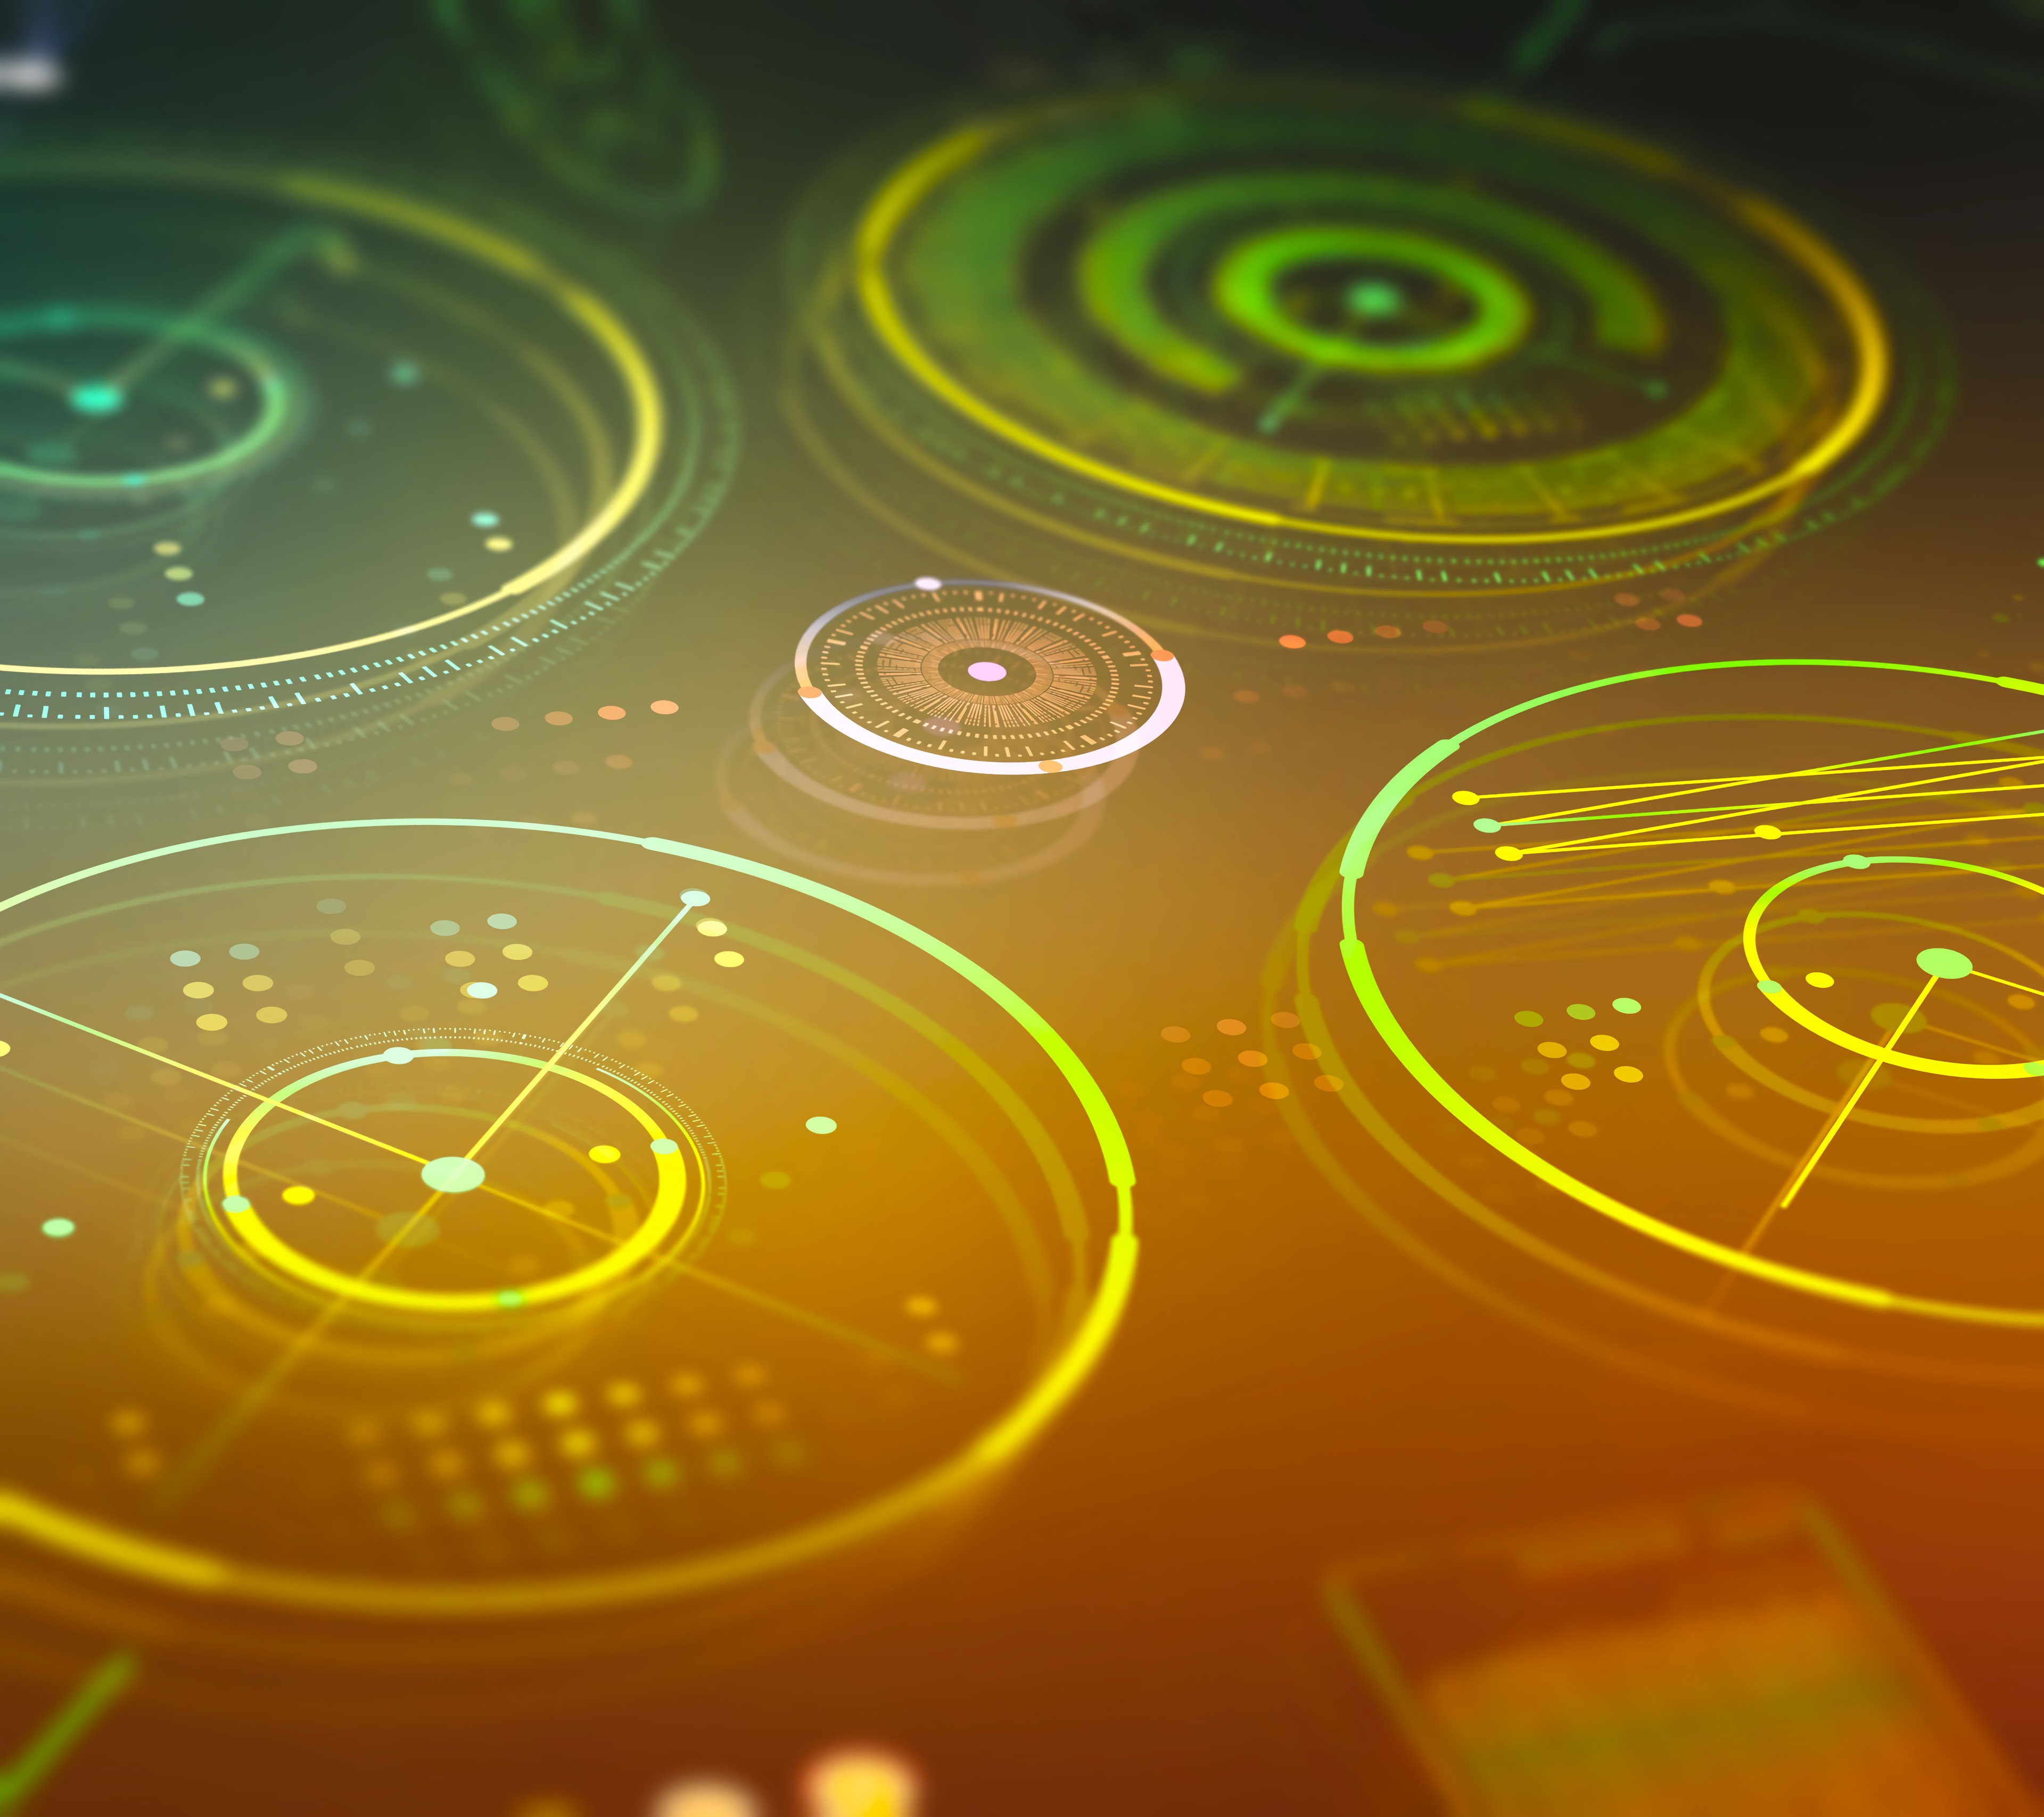 94176 download wallpaper Abstract, Hologram, Circles, Neon, Digital screensavers and pictures for free